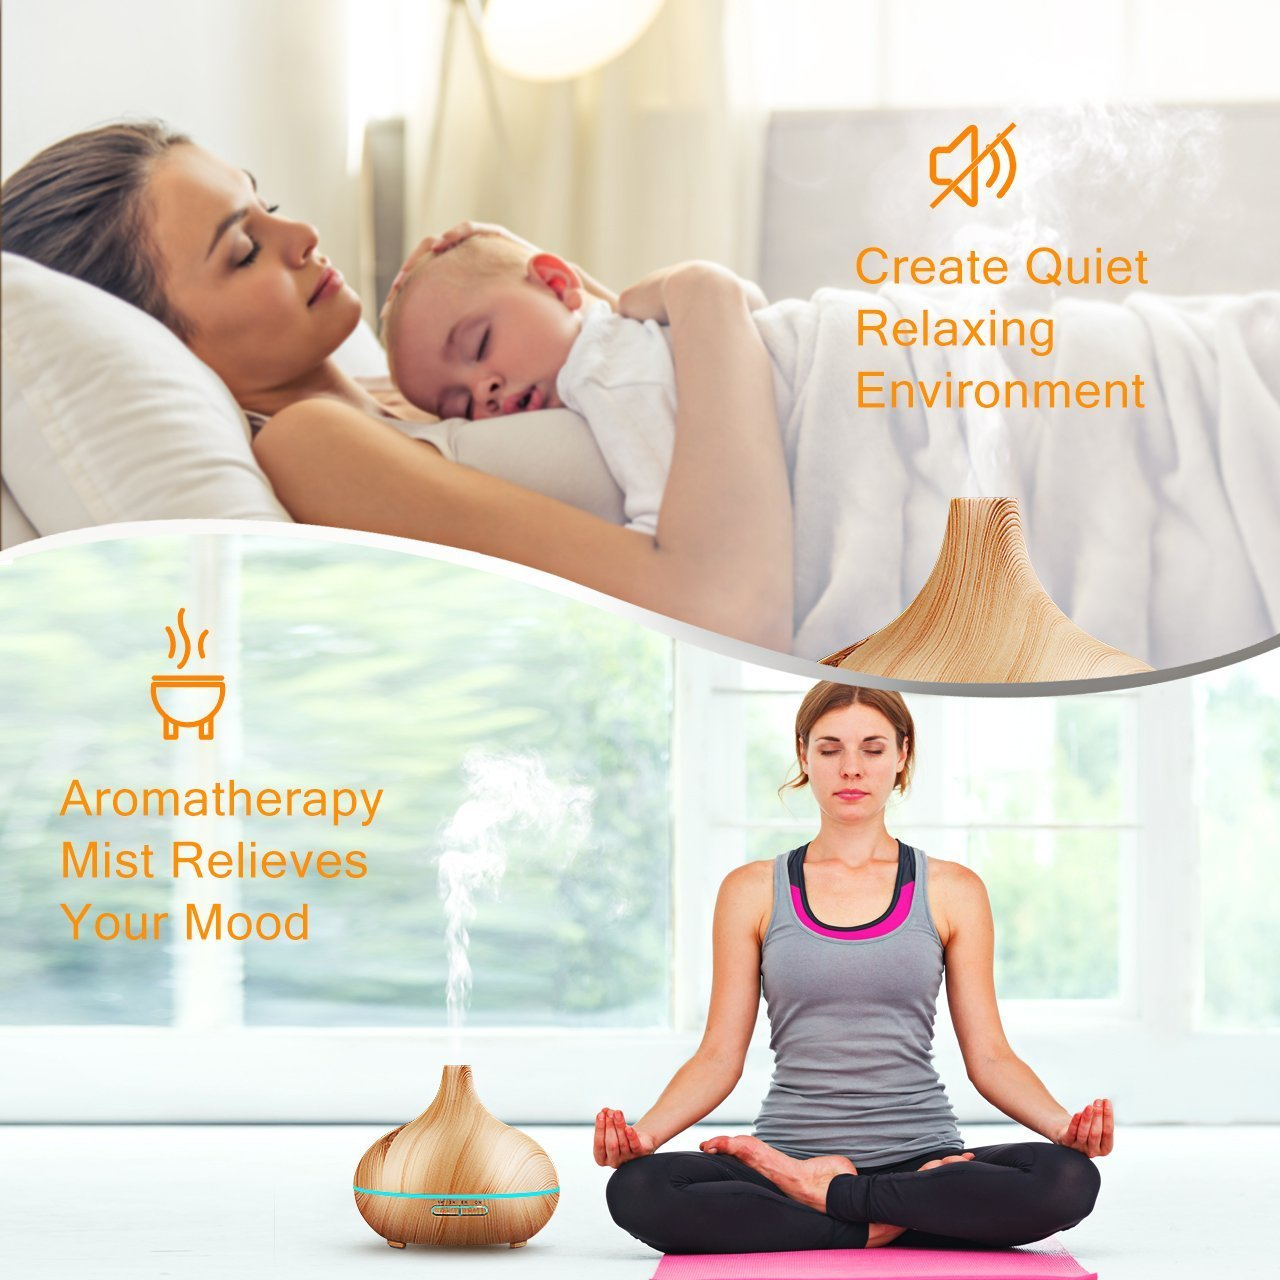 300ml cold fog humidifier ultrasonic aromatherapy essential oil disperser, wood grain 6 timing7 color LED automatic induction, no water closed function, office, home, living room, study, yoga, spa by Top-Fans (Image #7)